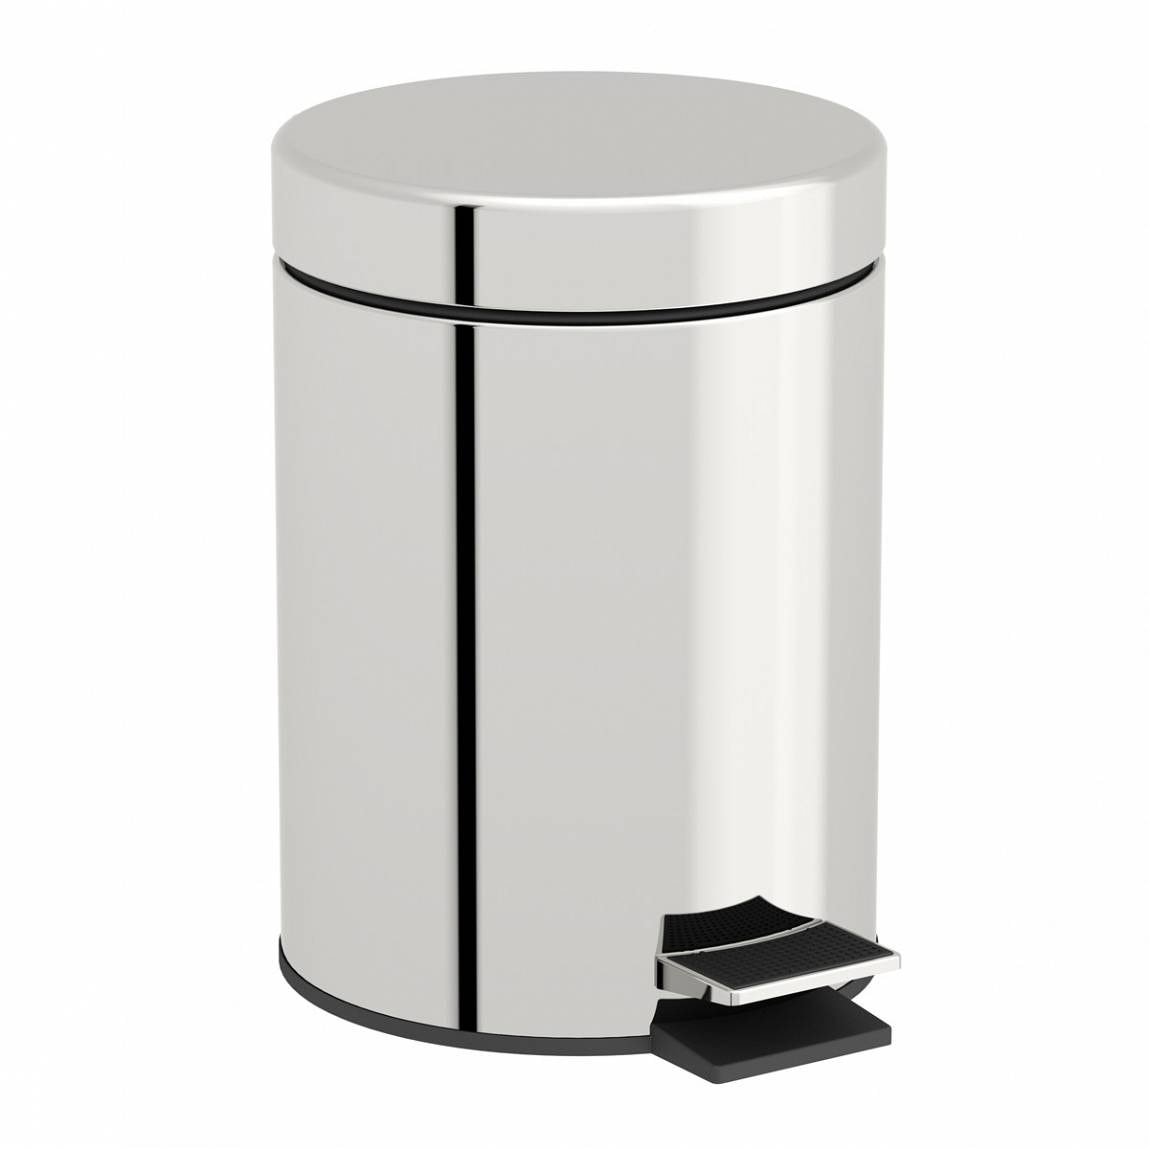 Orchard Options round stainless steel bathroom bin 5 litre